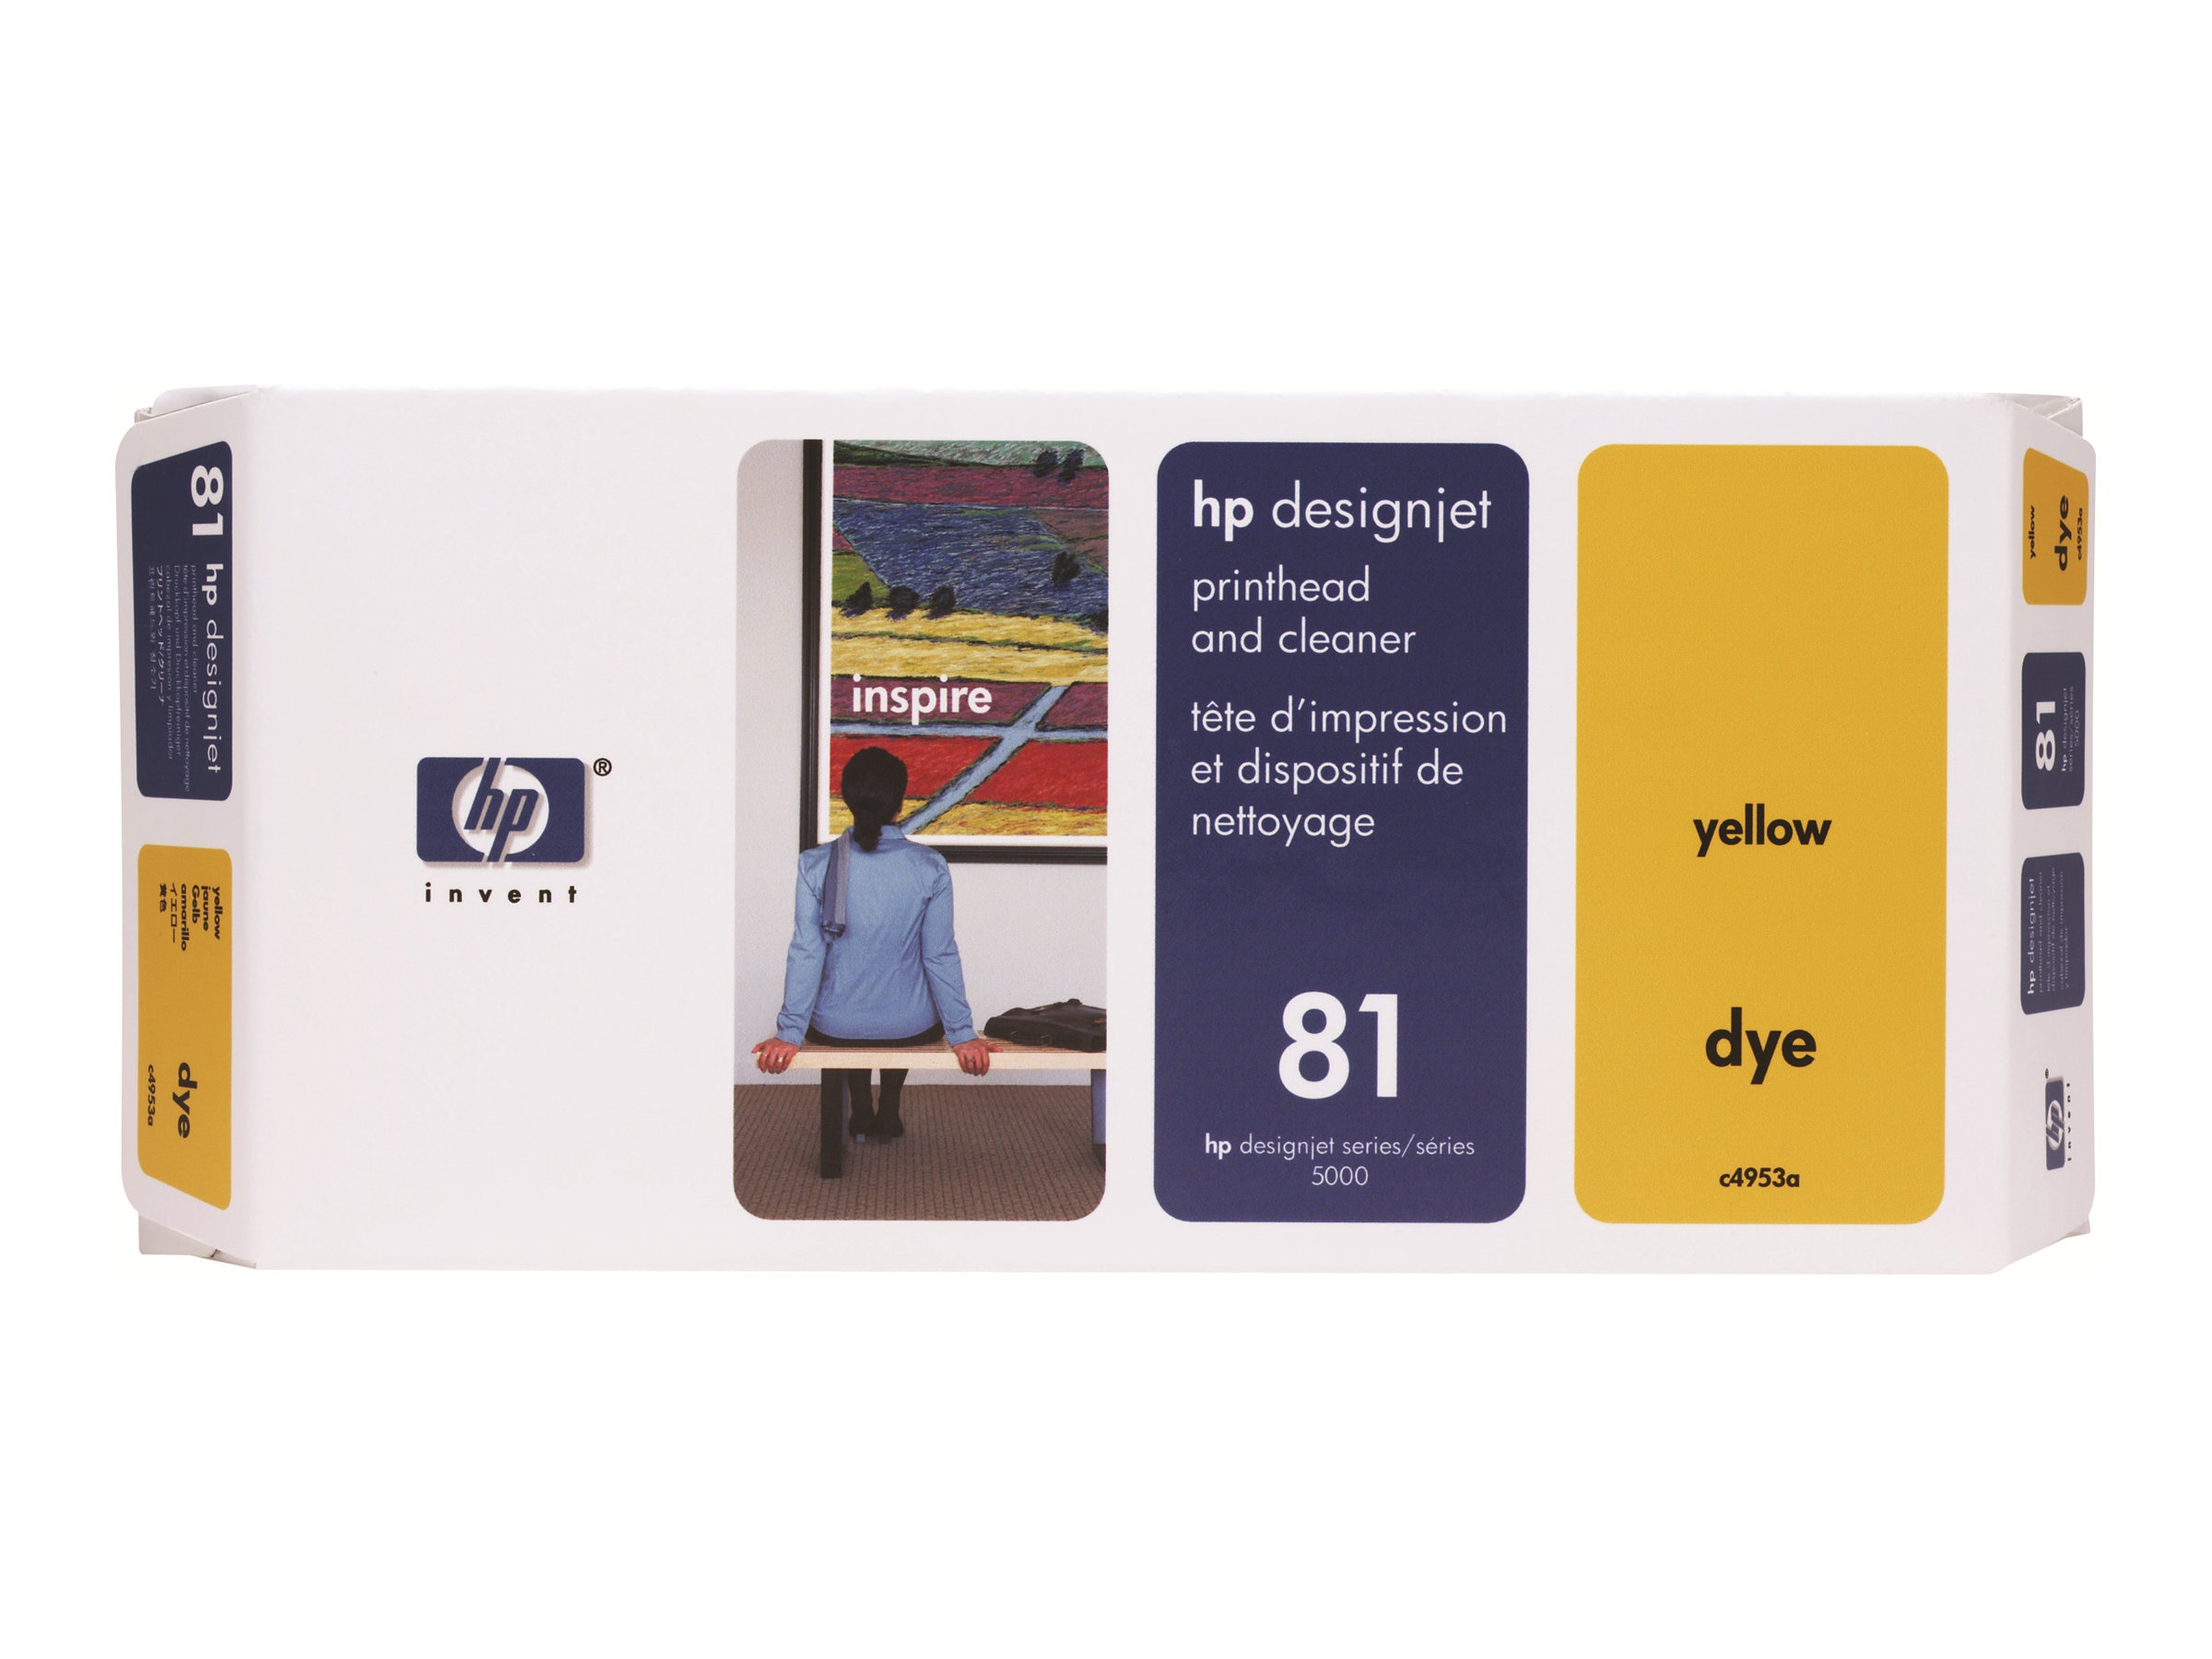 HP 81 Yellow Dye Printhead & Cleaner for HP Deskjet 5500